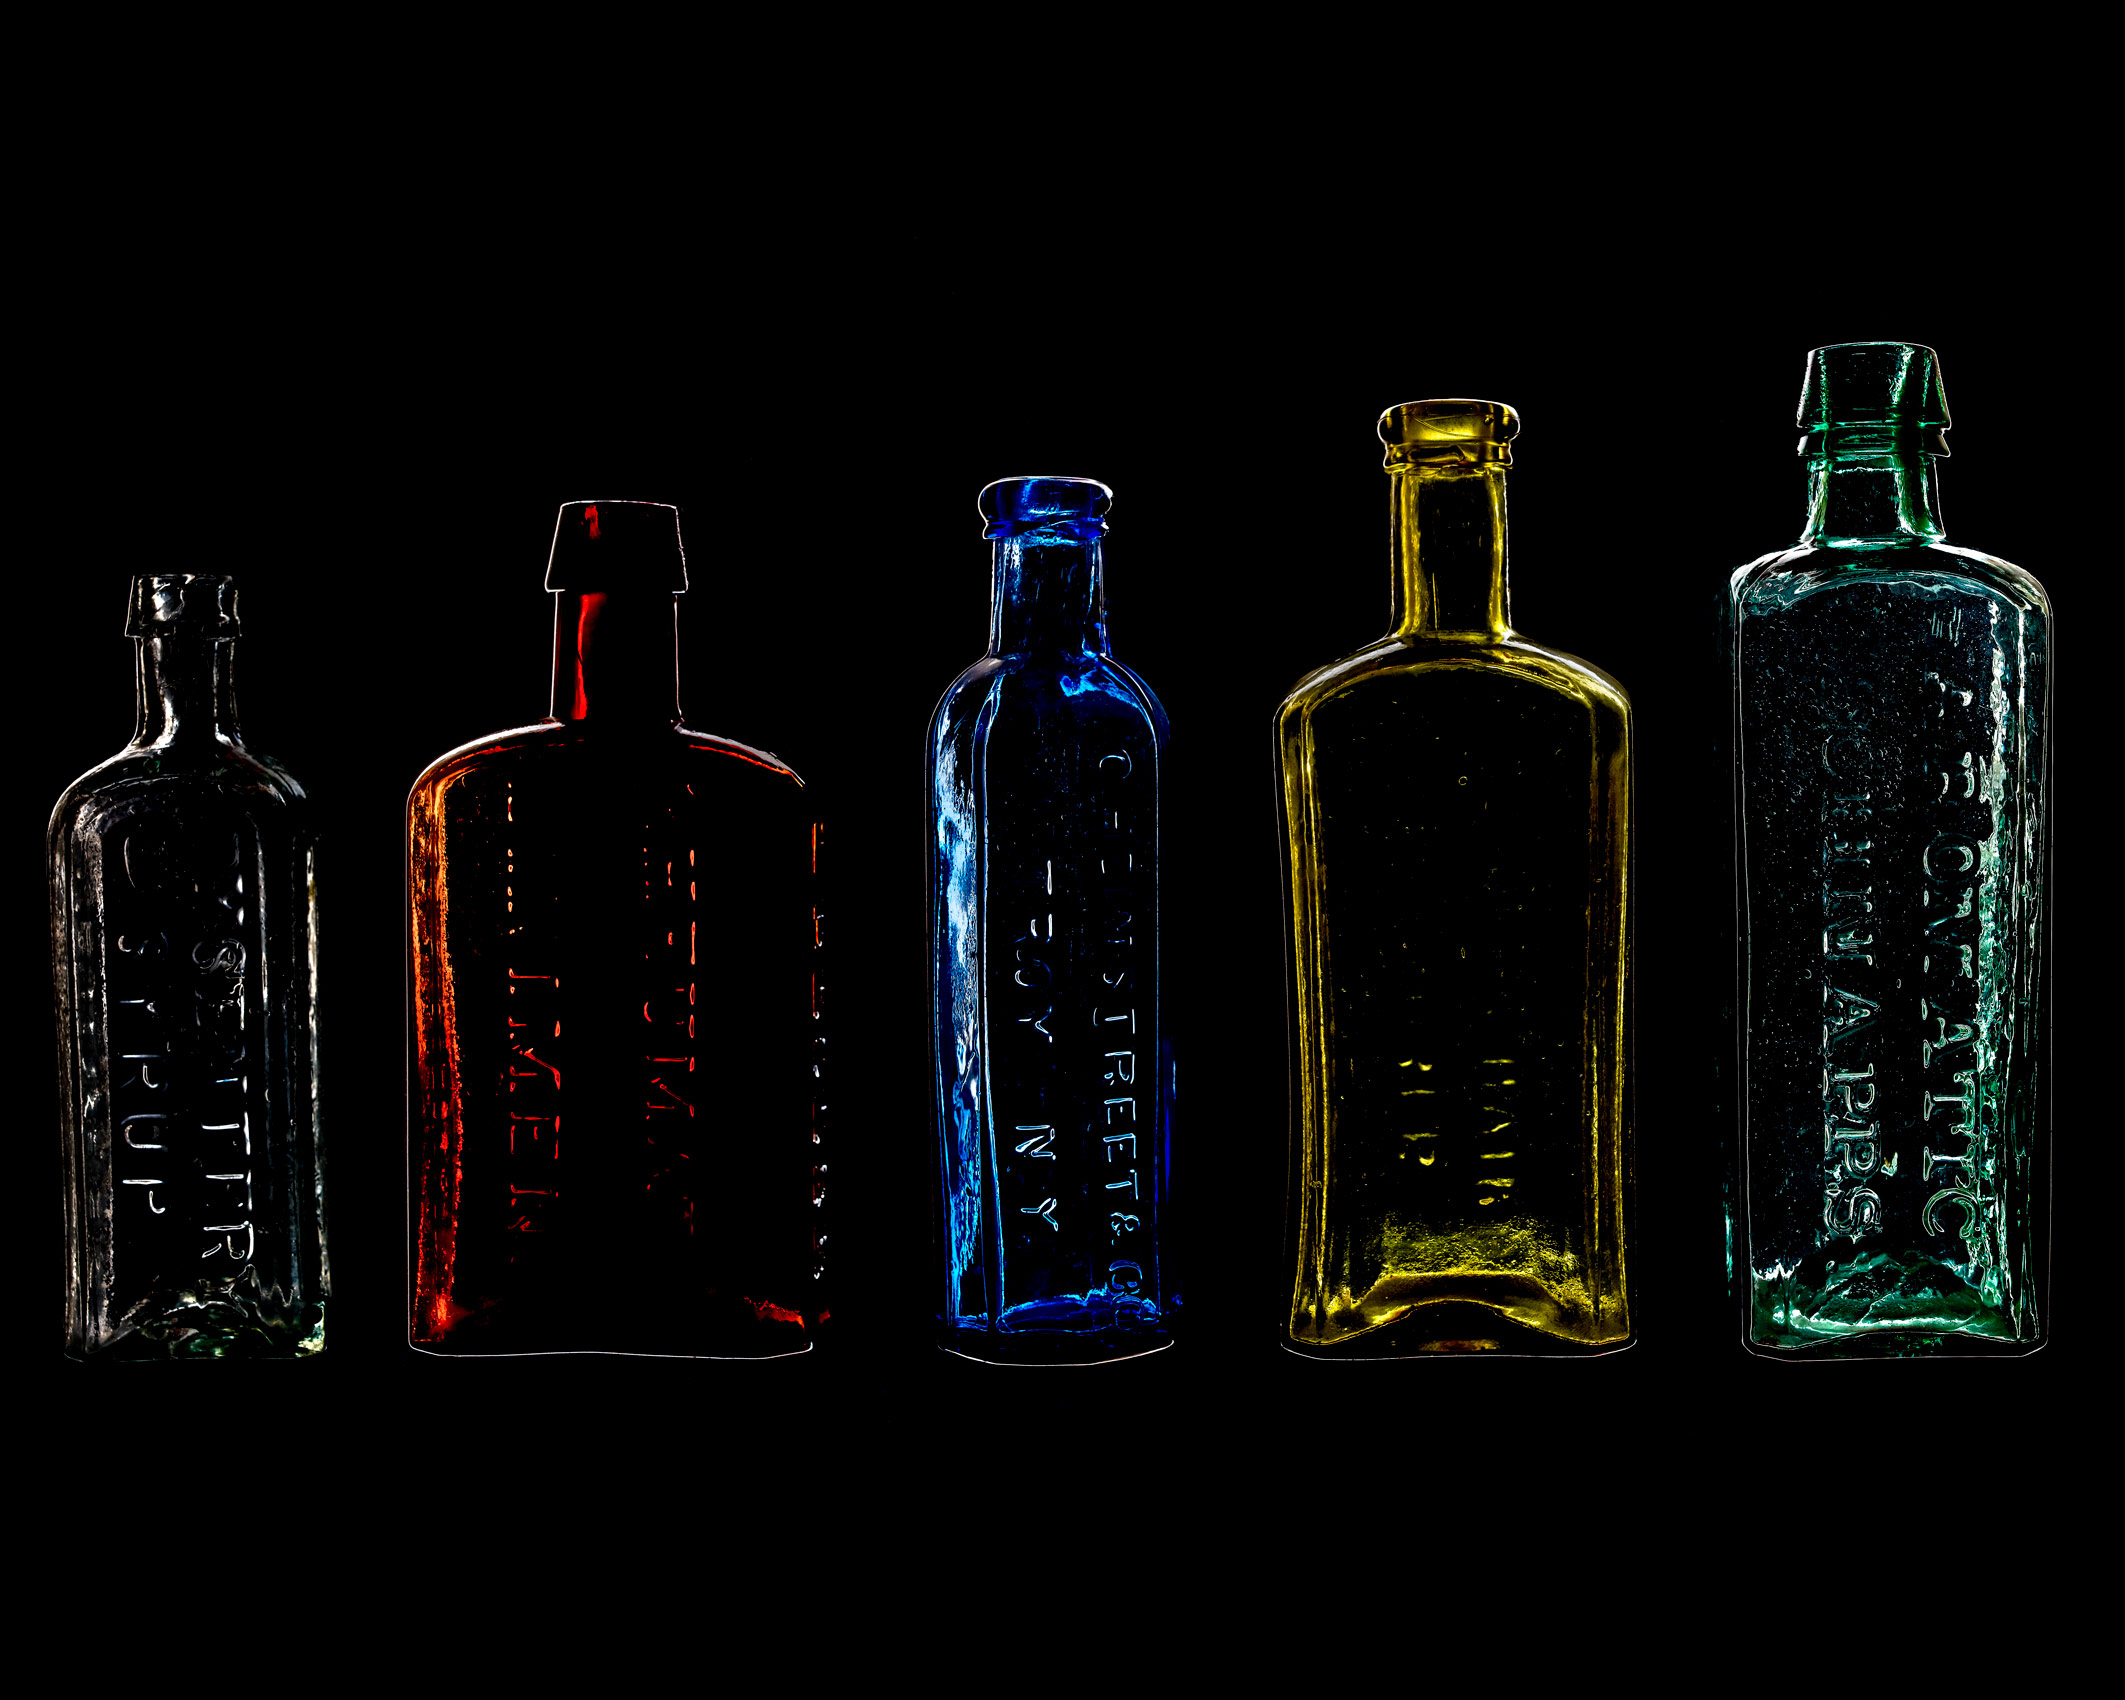 Colors of Old Bottles